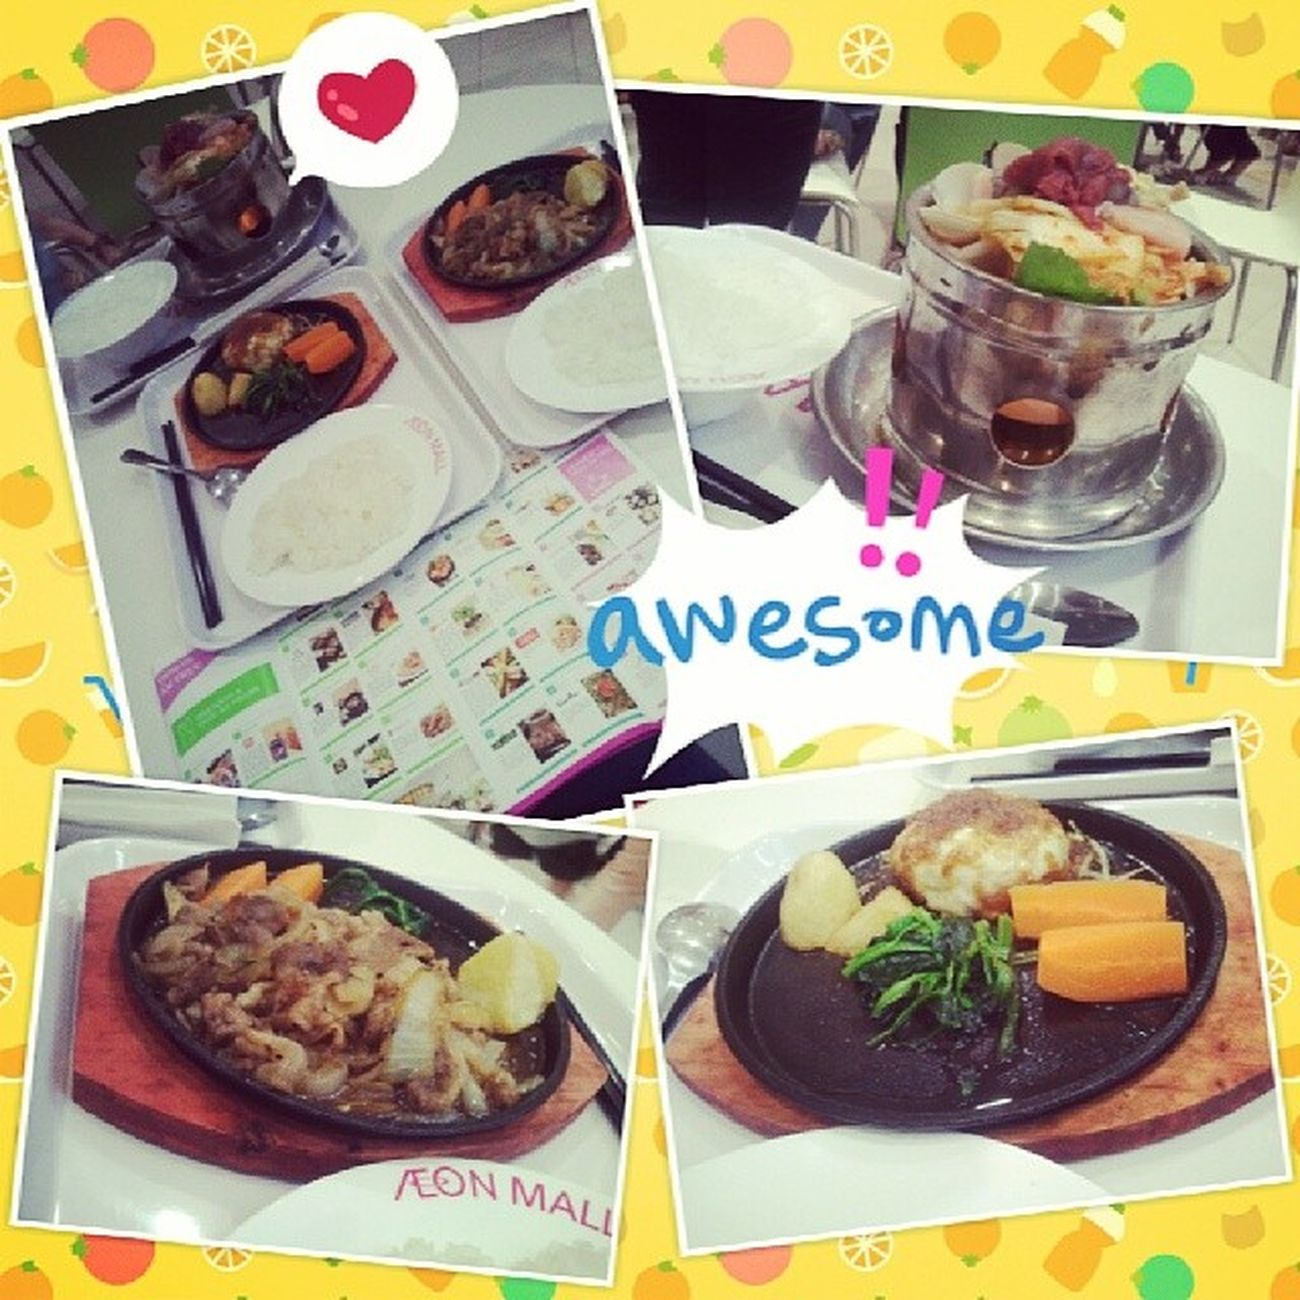 First time being here *-* enjoy Japanese foods so damn muchhh!!! But so damn many people @@ freaking hot here!! With @h30zdo :x